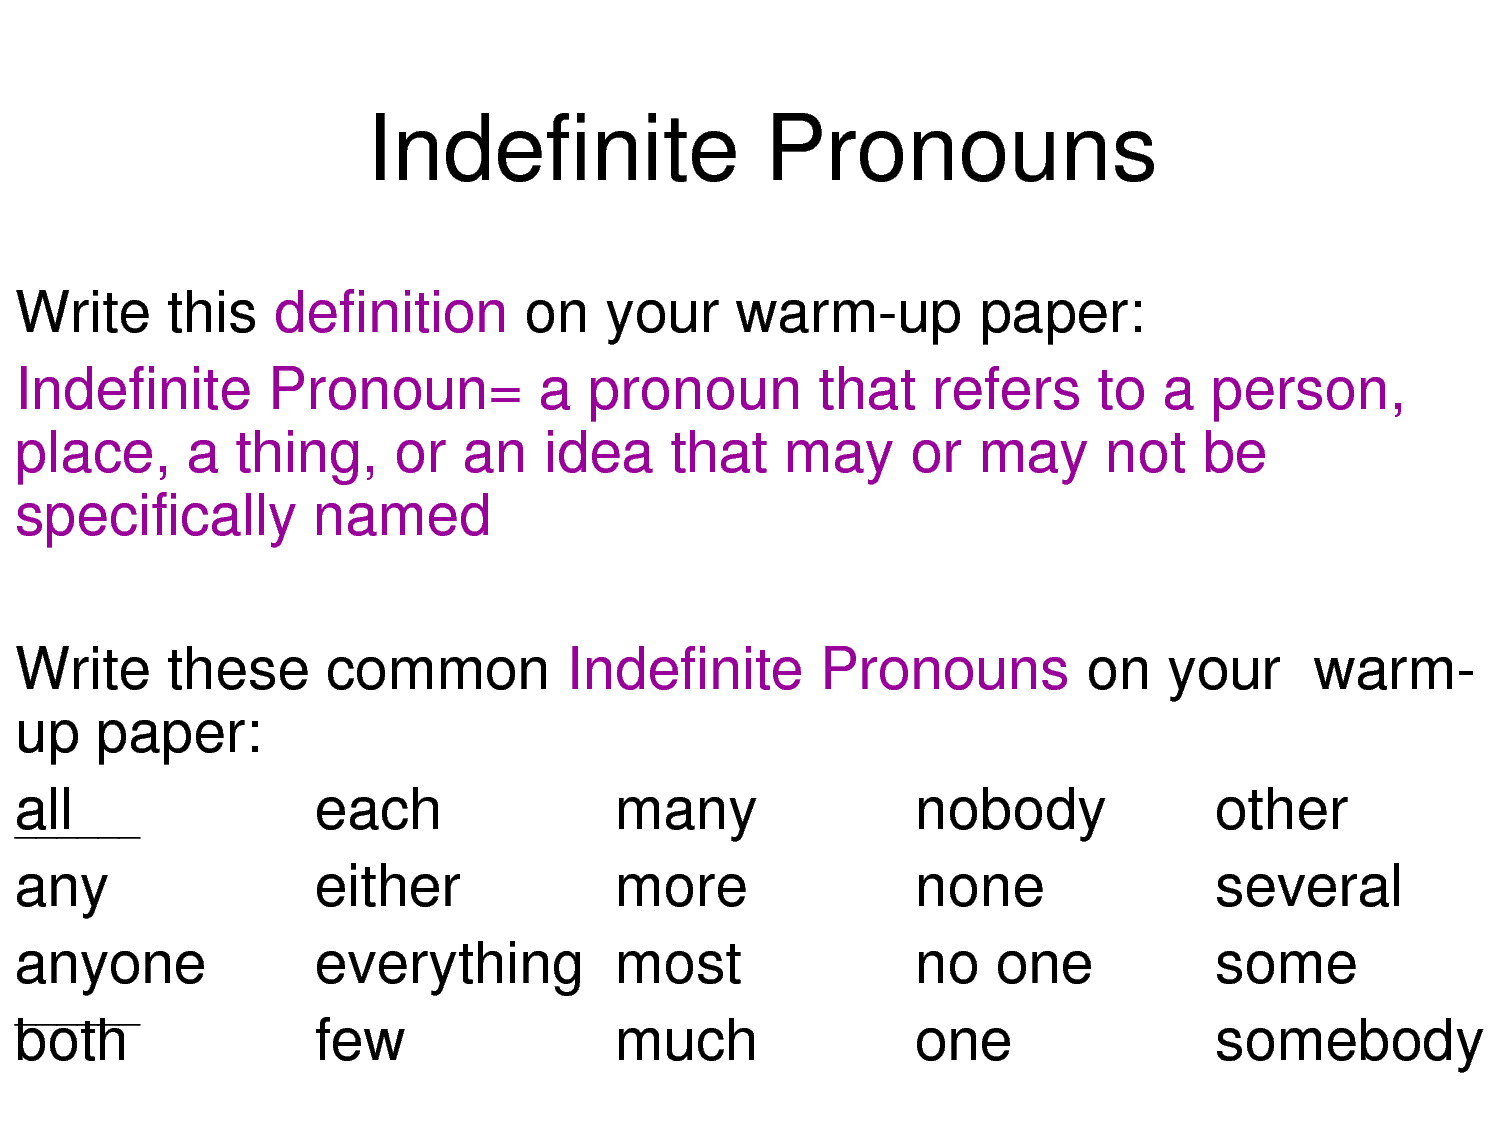 Worksheet Indefinte Pronoun worksheet an indefinite pronoun mikyu free pronouns